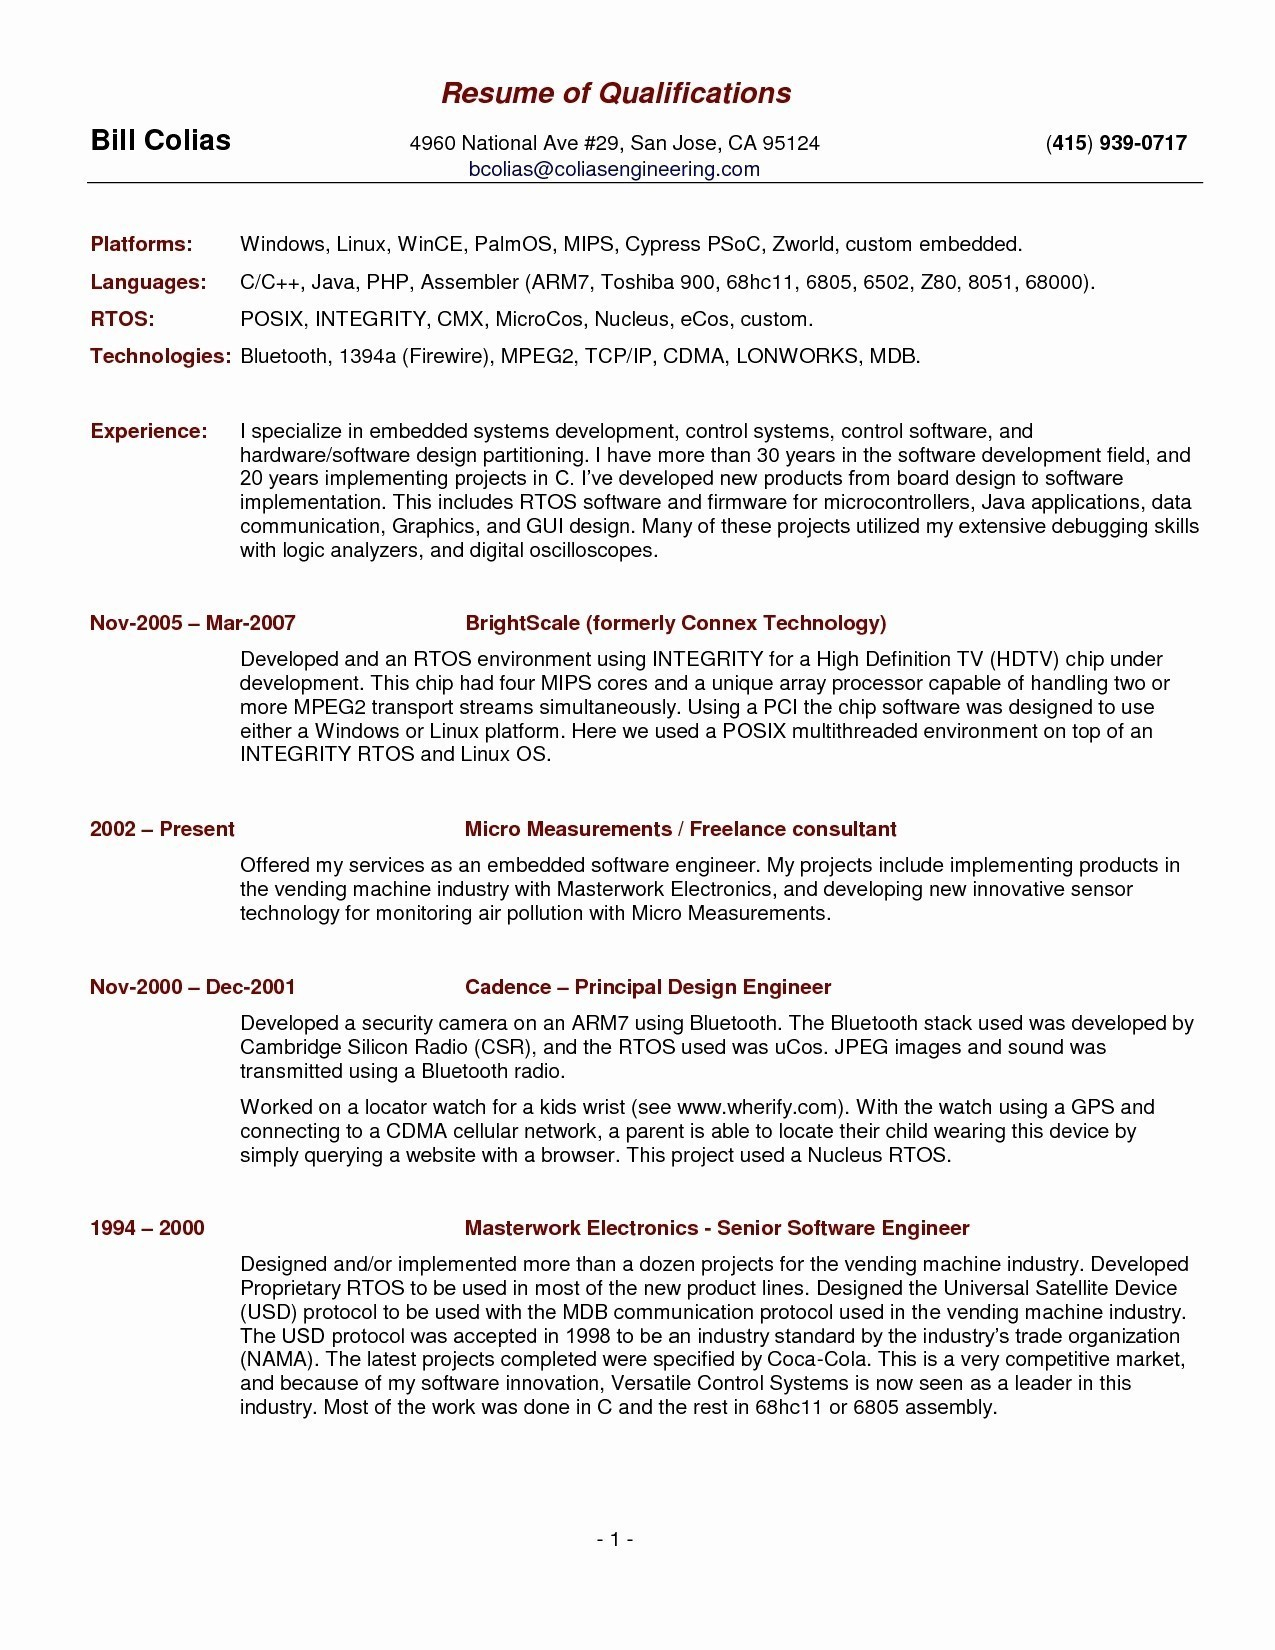 Waiter Resume Template - Waitress Resume Examples Lovely New where Can I Get A Resume Unique